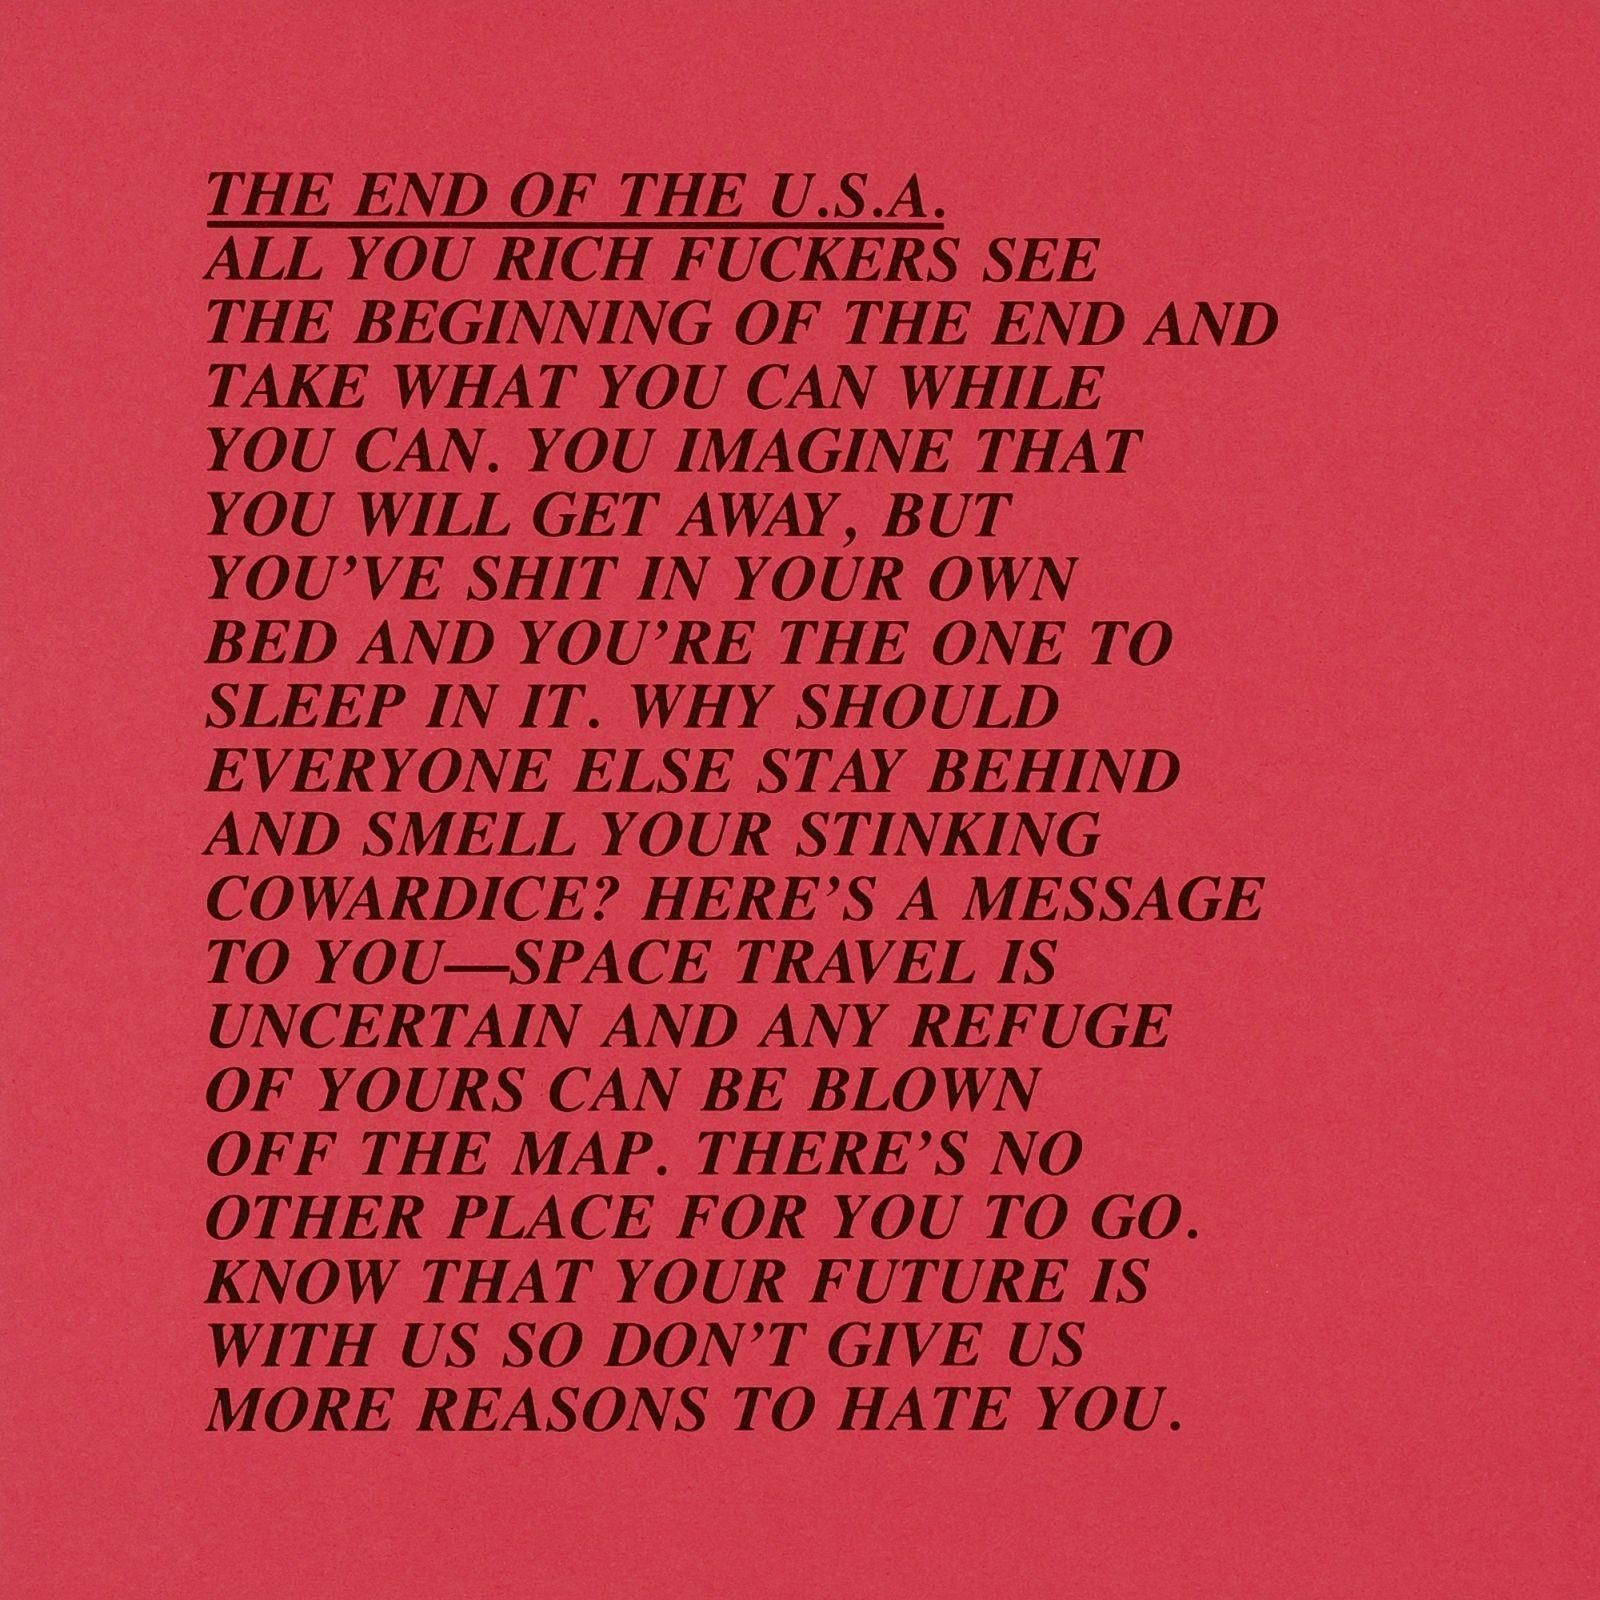 010 Jenny Holzer Inflammatory Essays Essay Awful For Sale Print Buy Full